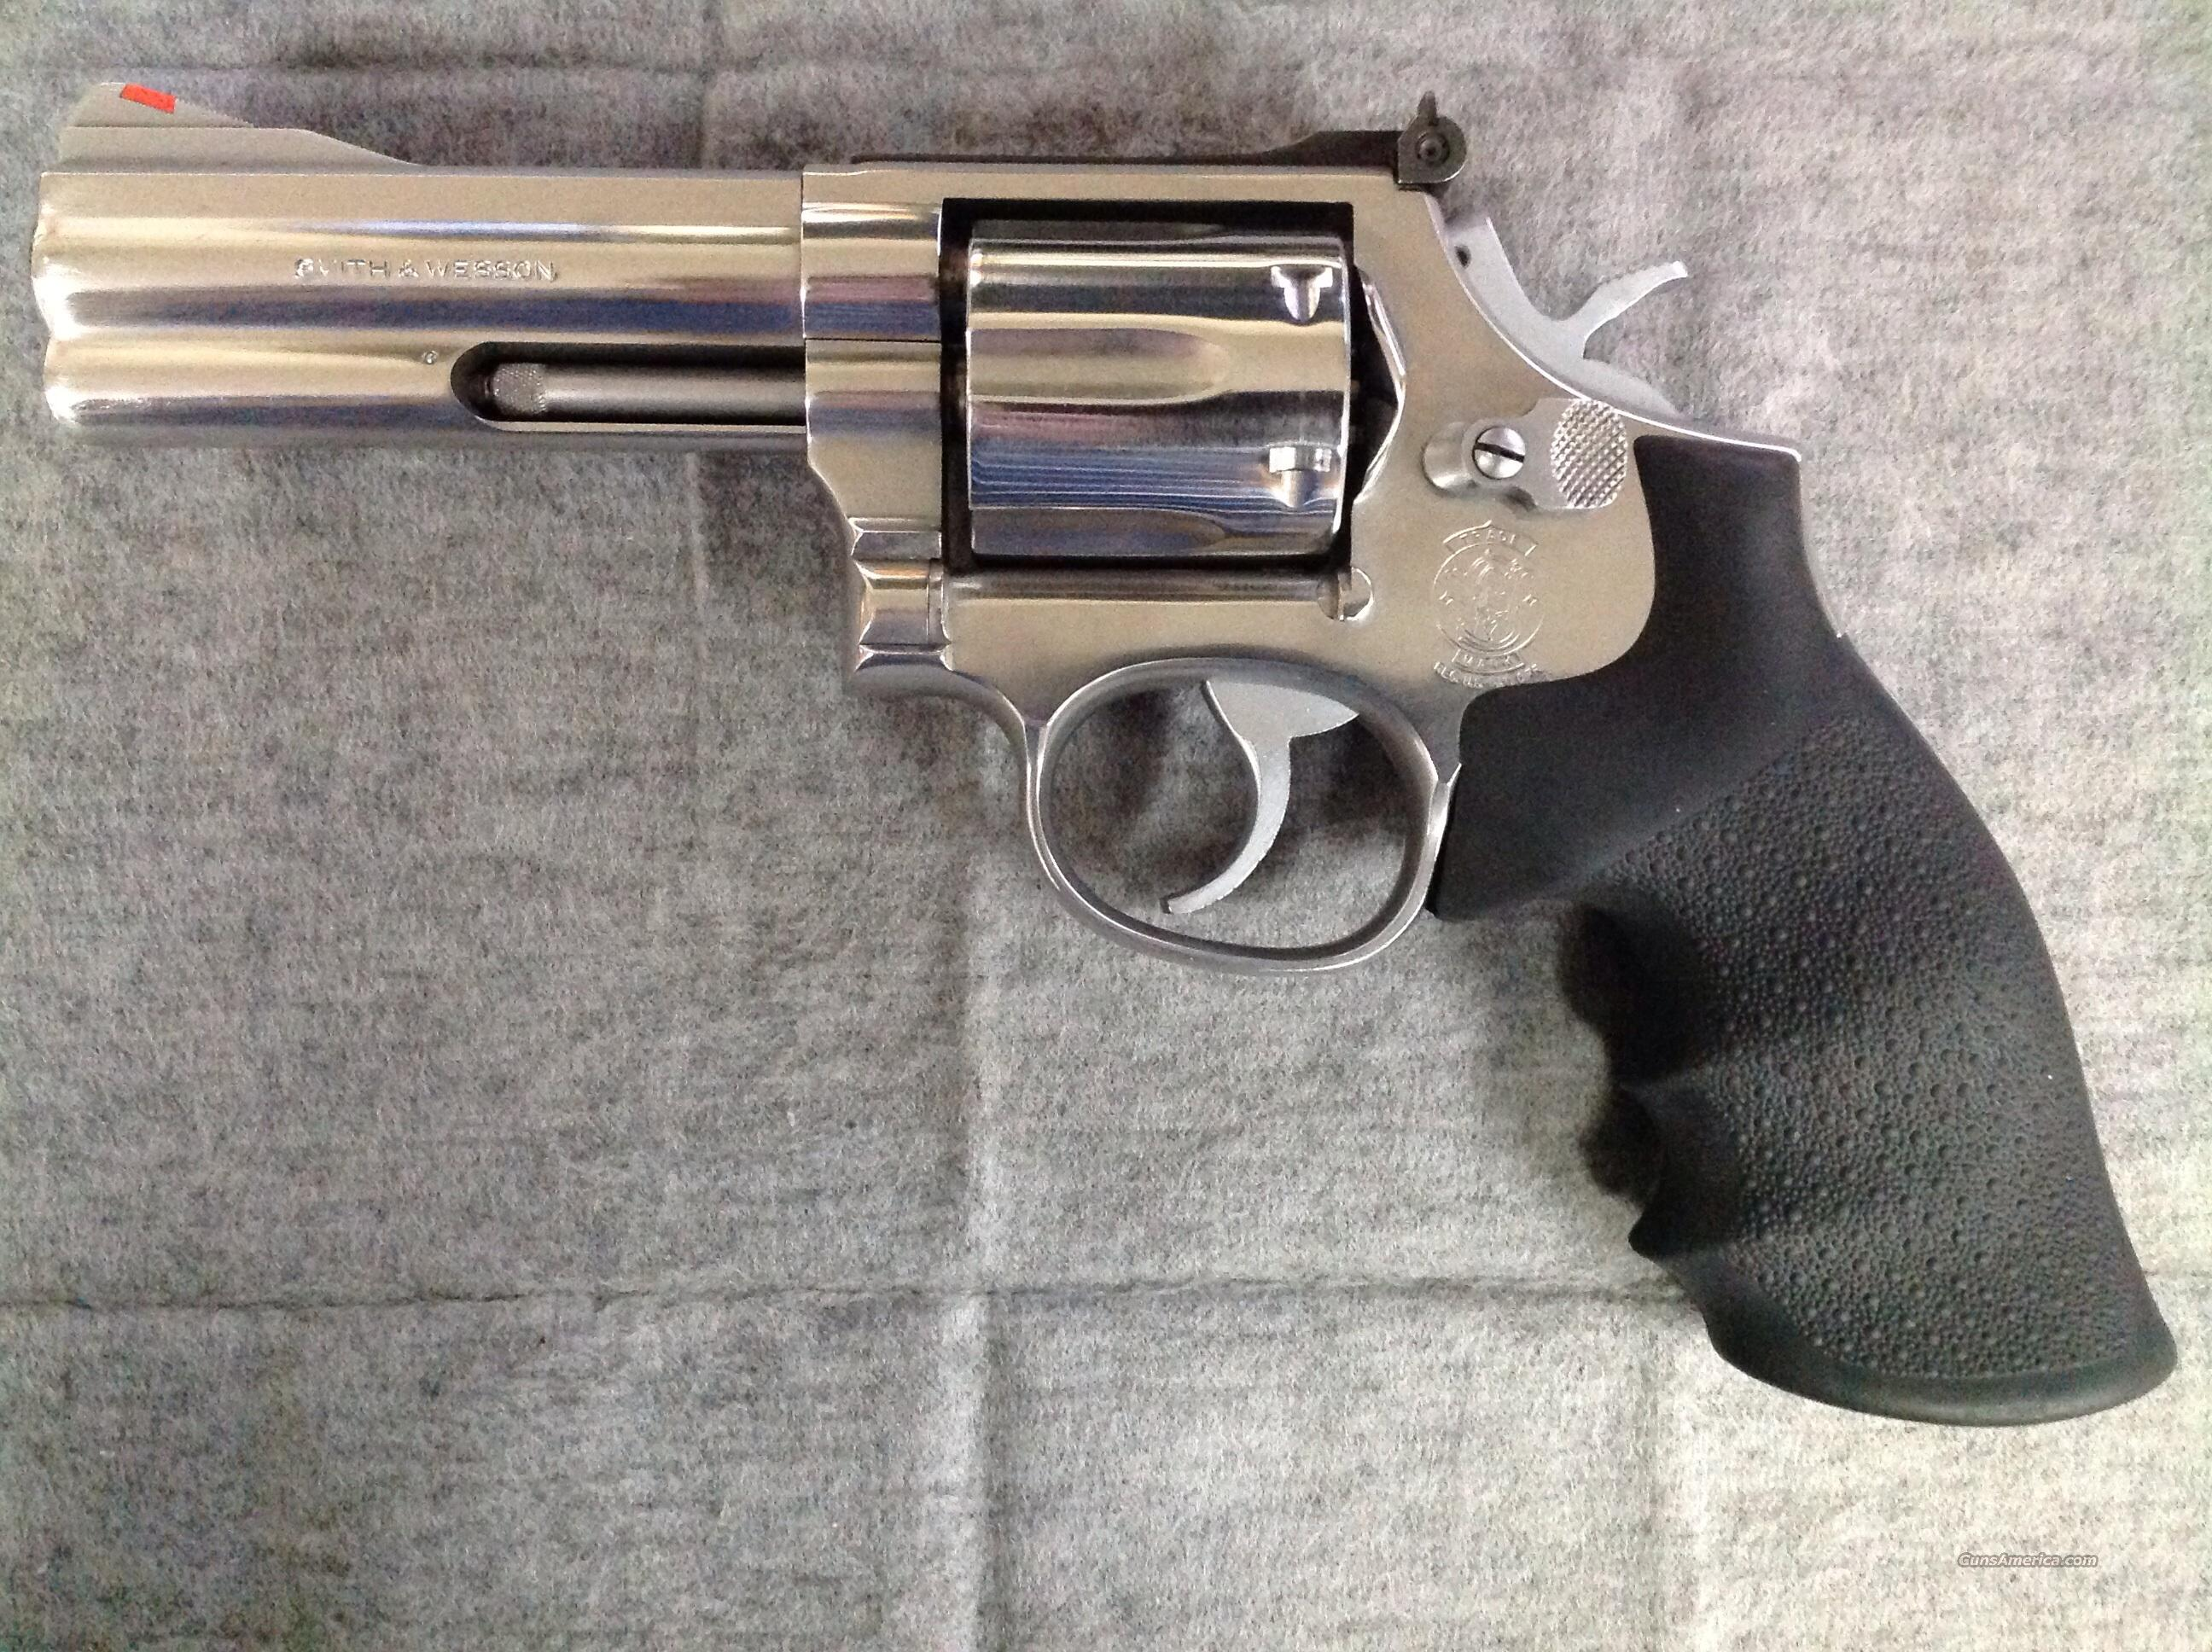 Smith & Wesson 686-3 357mag  Guns > Pistols > Smith & Wesson Revolvers > Full Frame Revolver